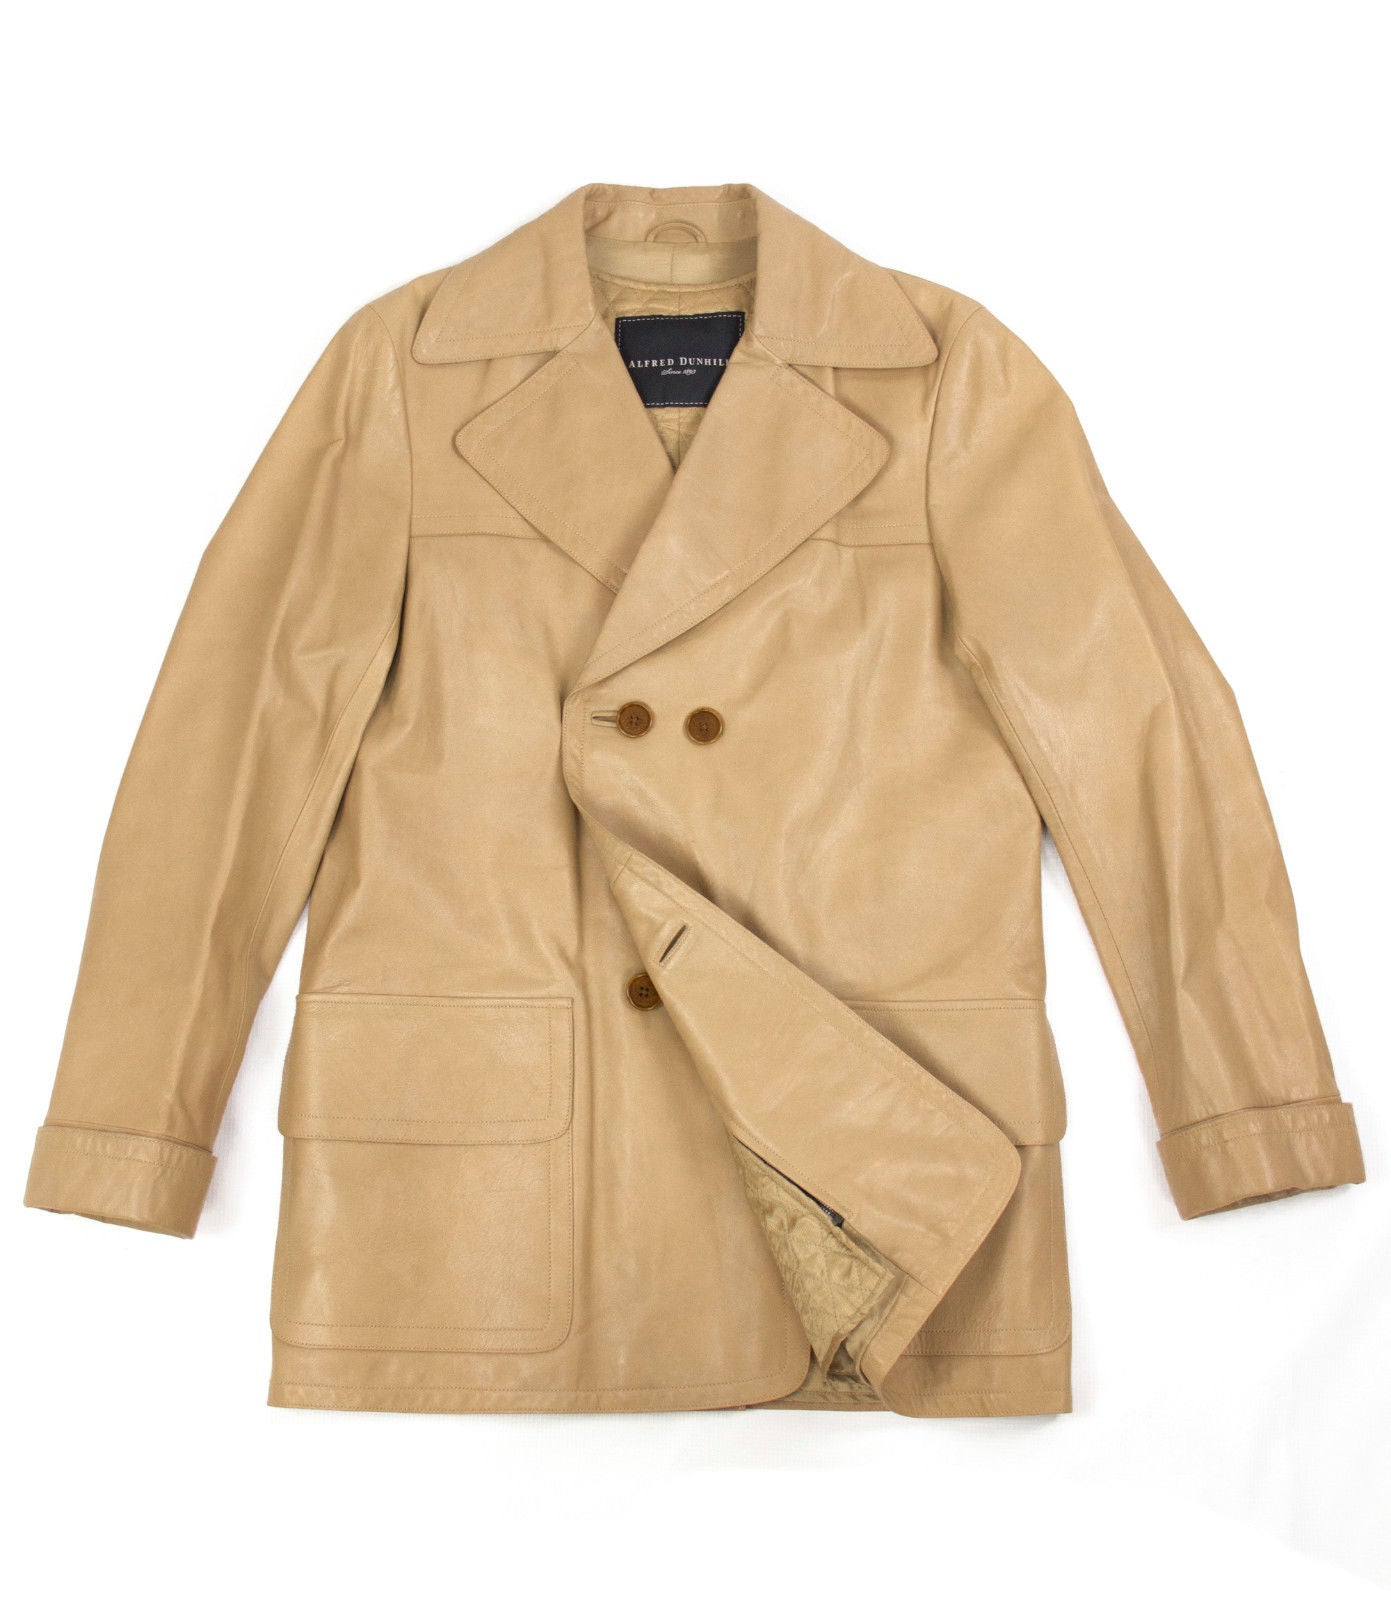 Alfred Dunhill  Calf Skin Leather Double Breasted Jacket; M, EU 48, USA 38 - secondfirst